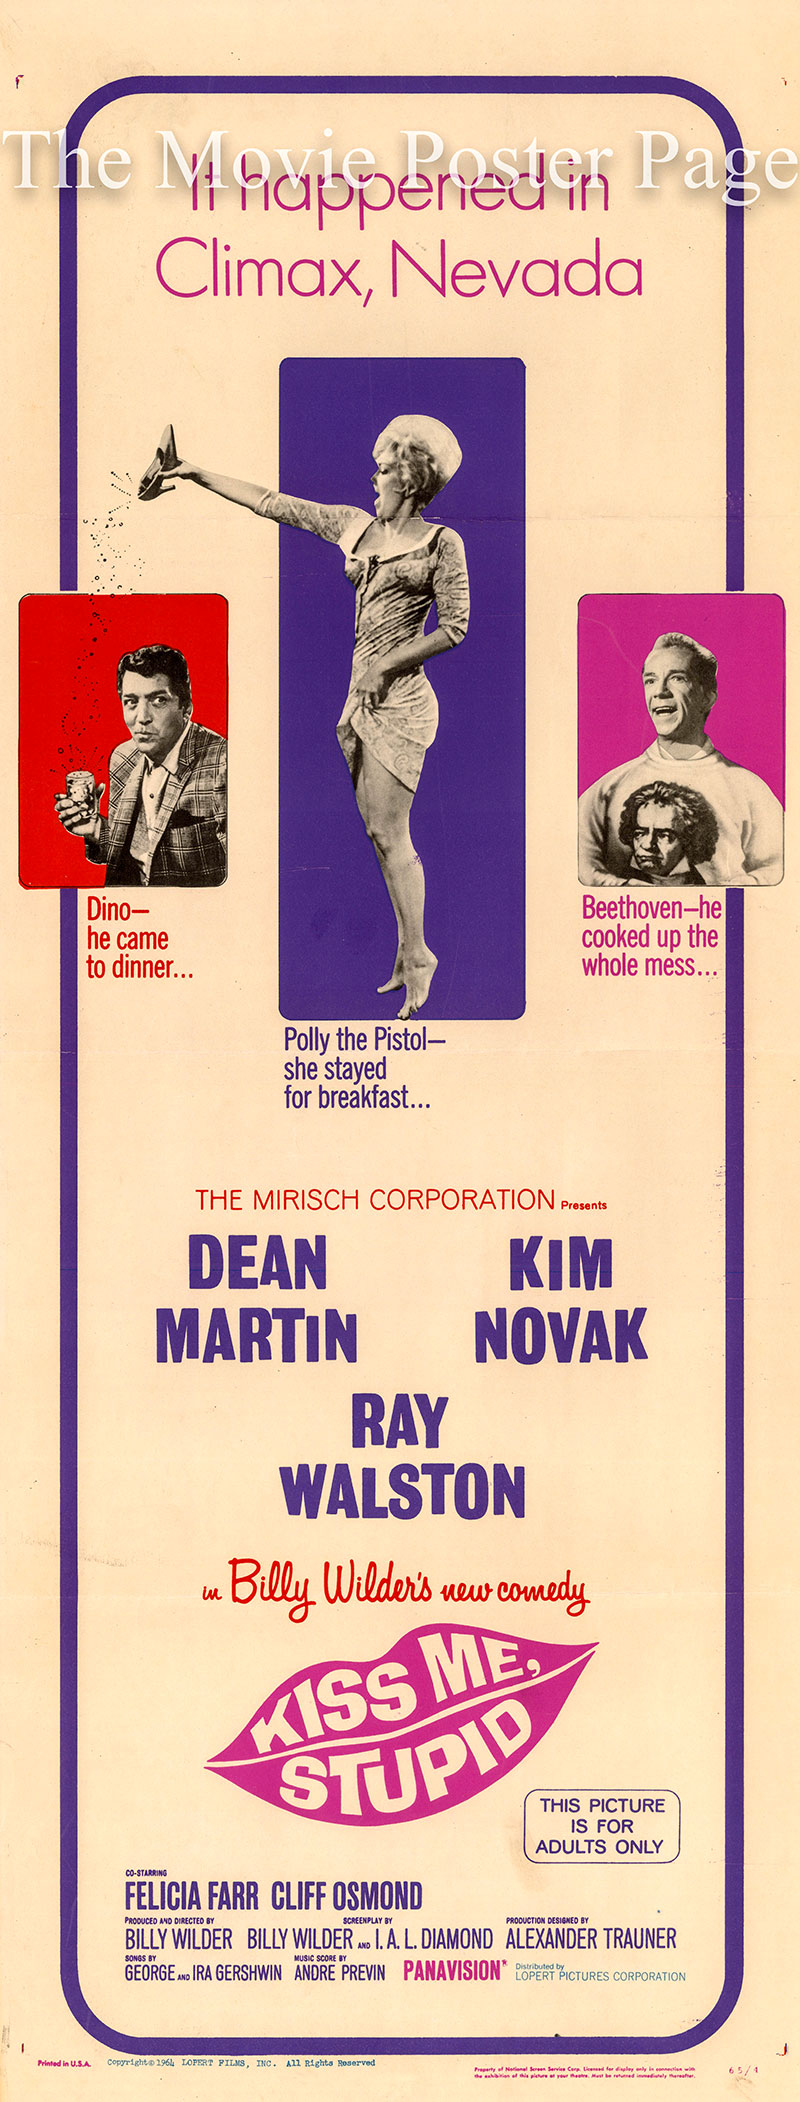 Pictured is a US insert poster for the 1965 Billy Wilder film Kiss Me Stupid starring Dean Martin.